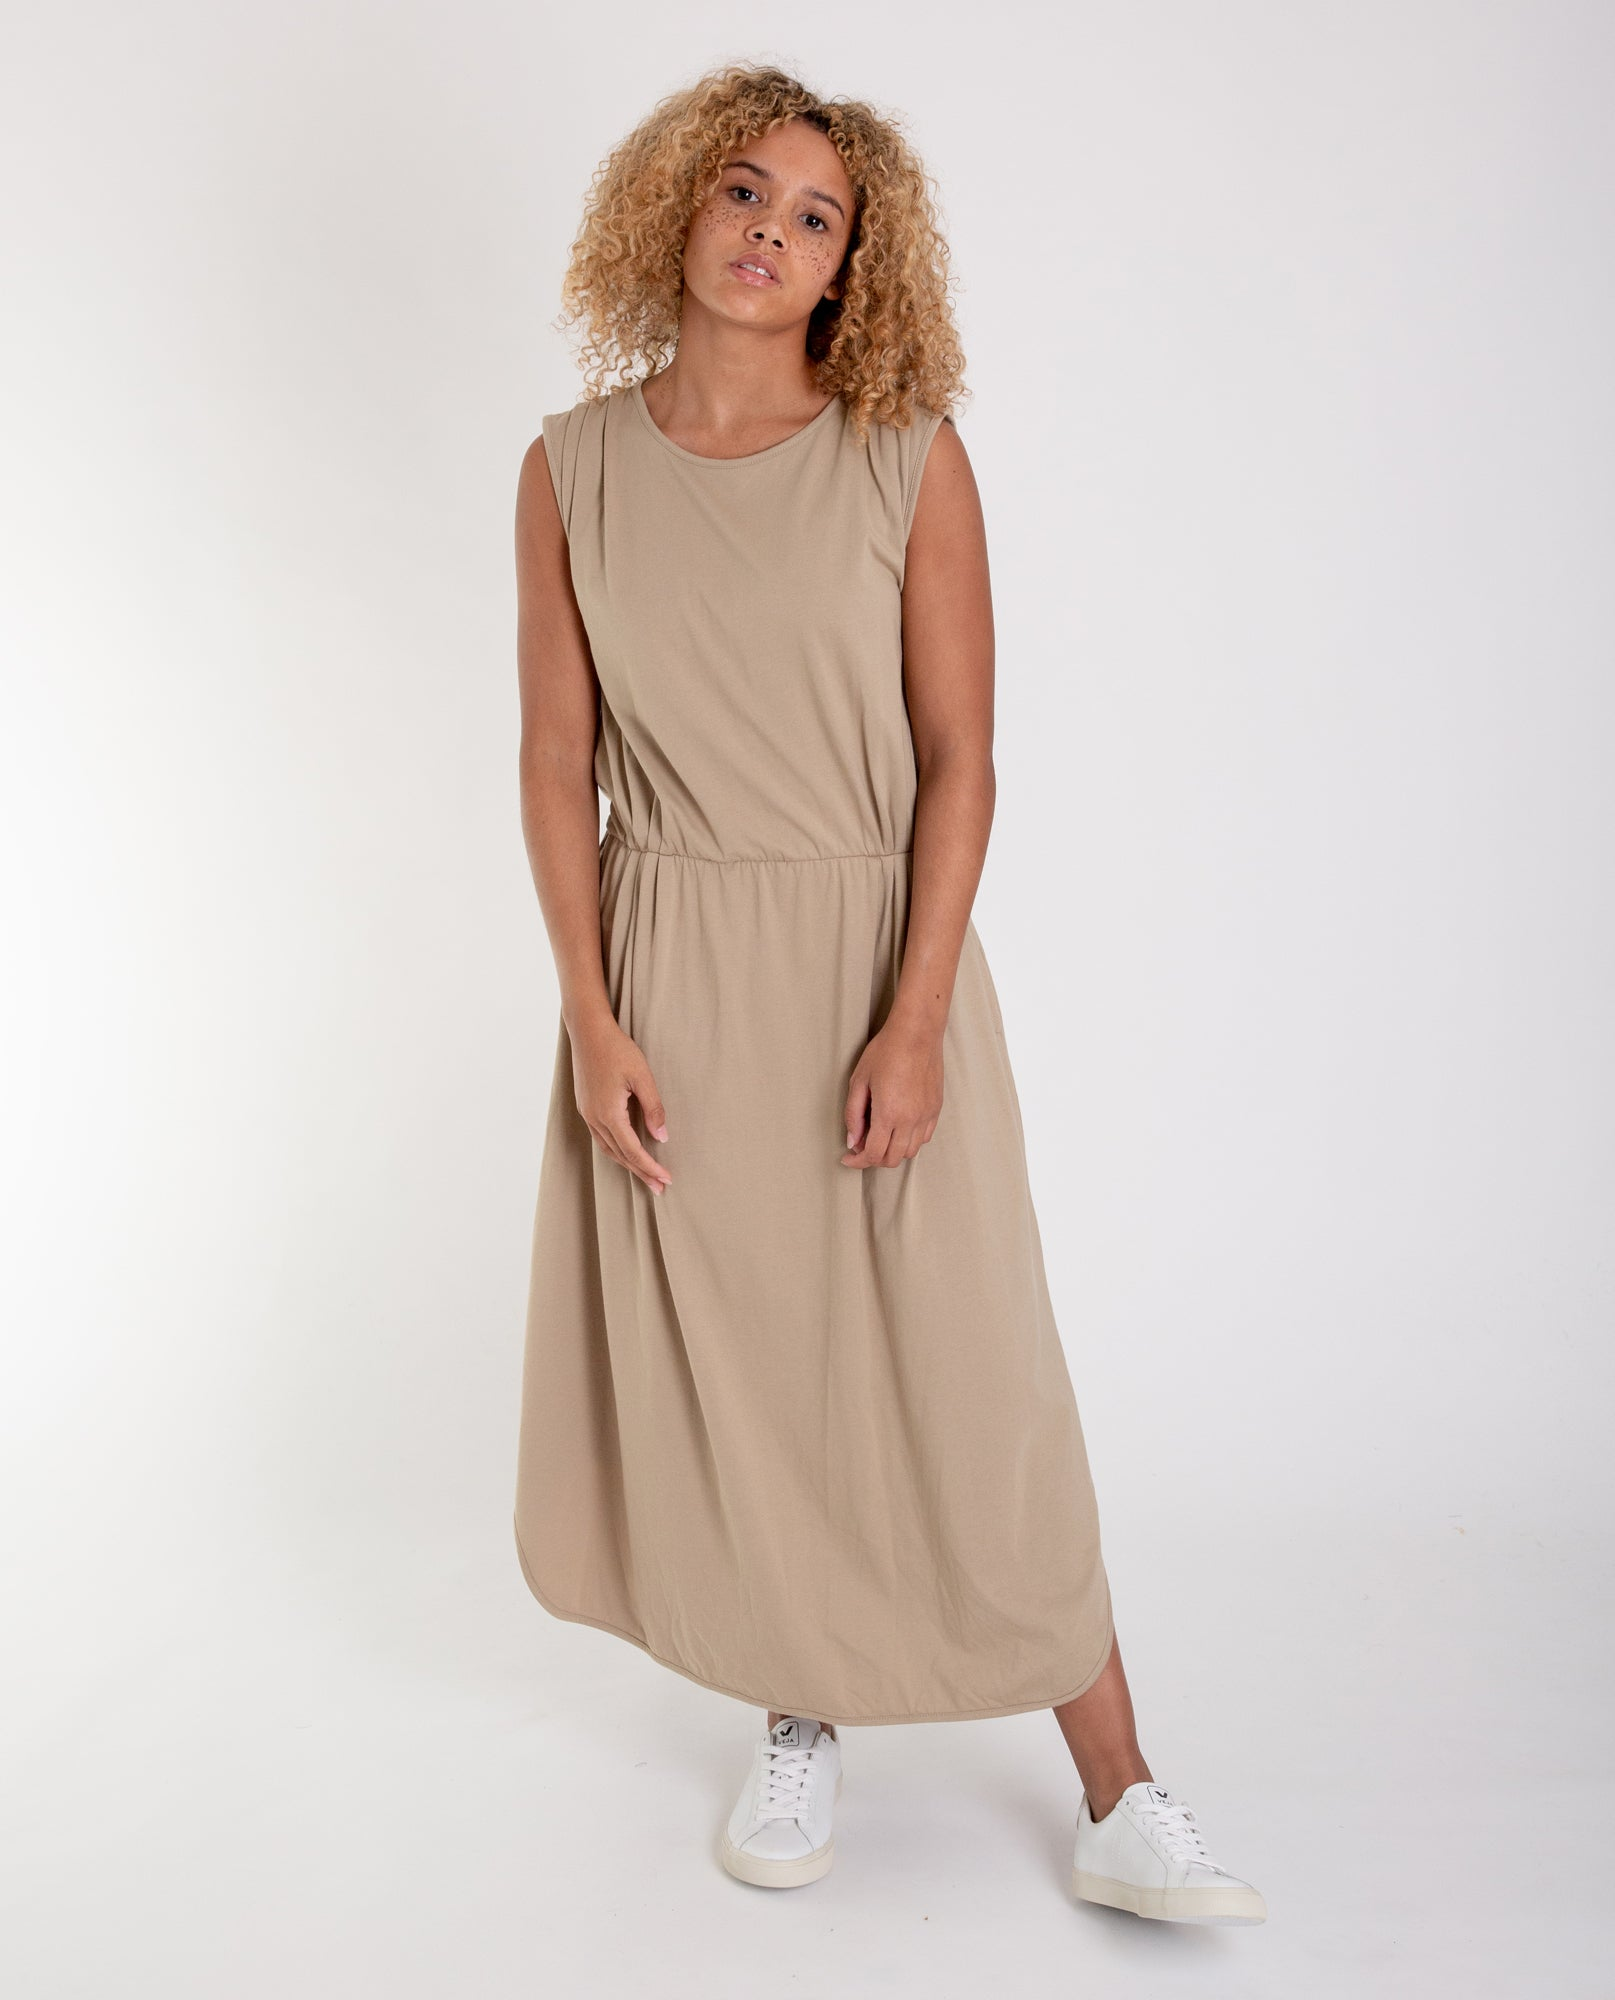 MULBERRY Organic Cotton Dress In Sand